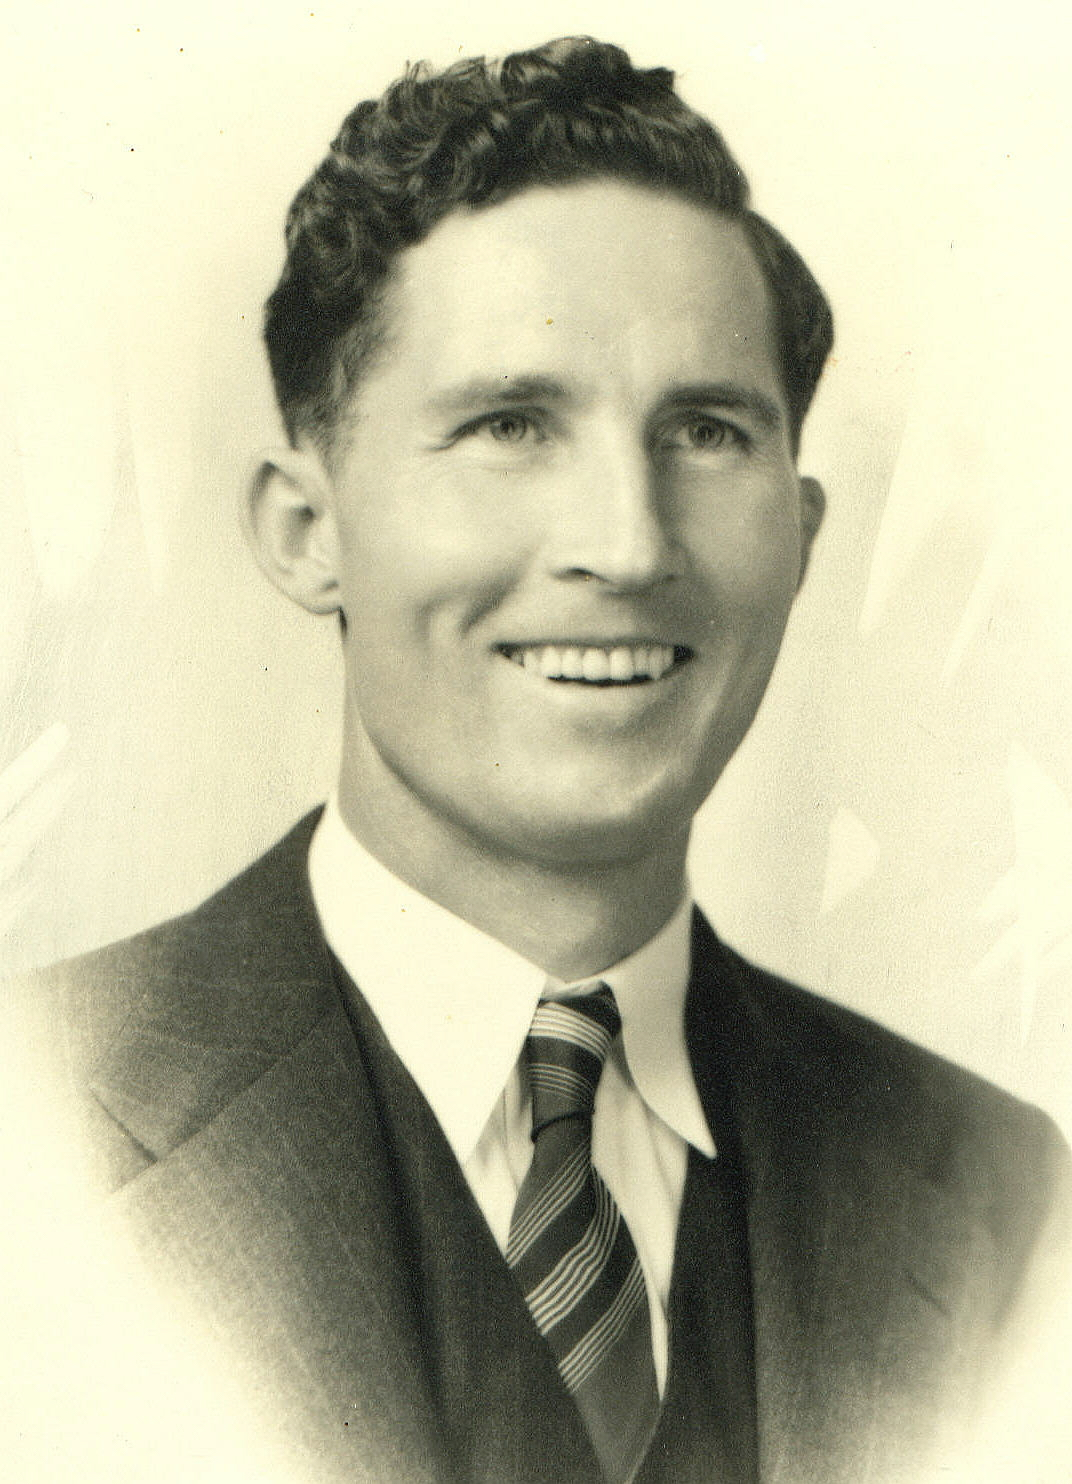 Gene as a young man